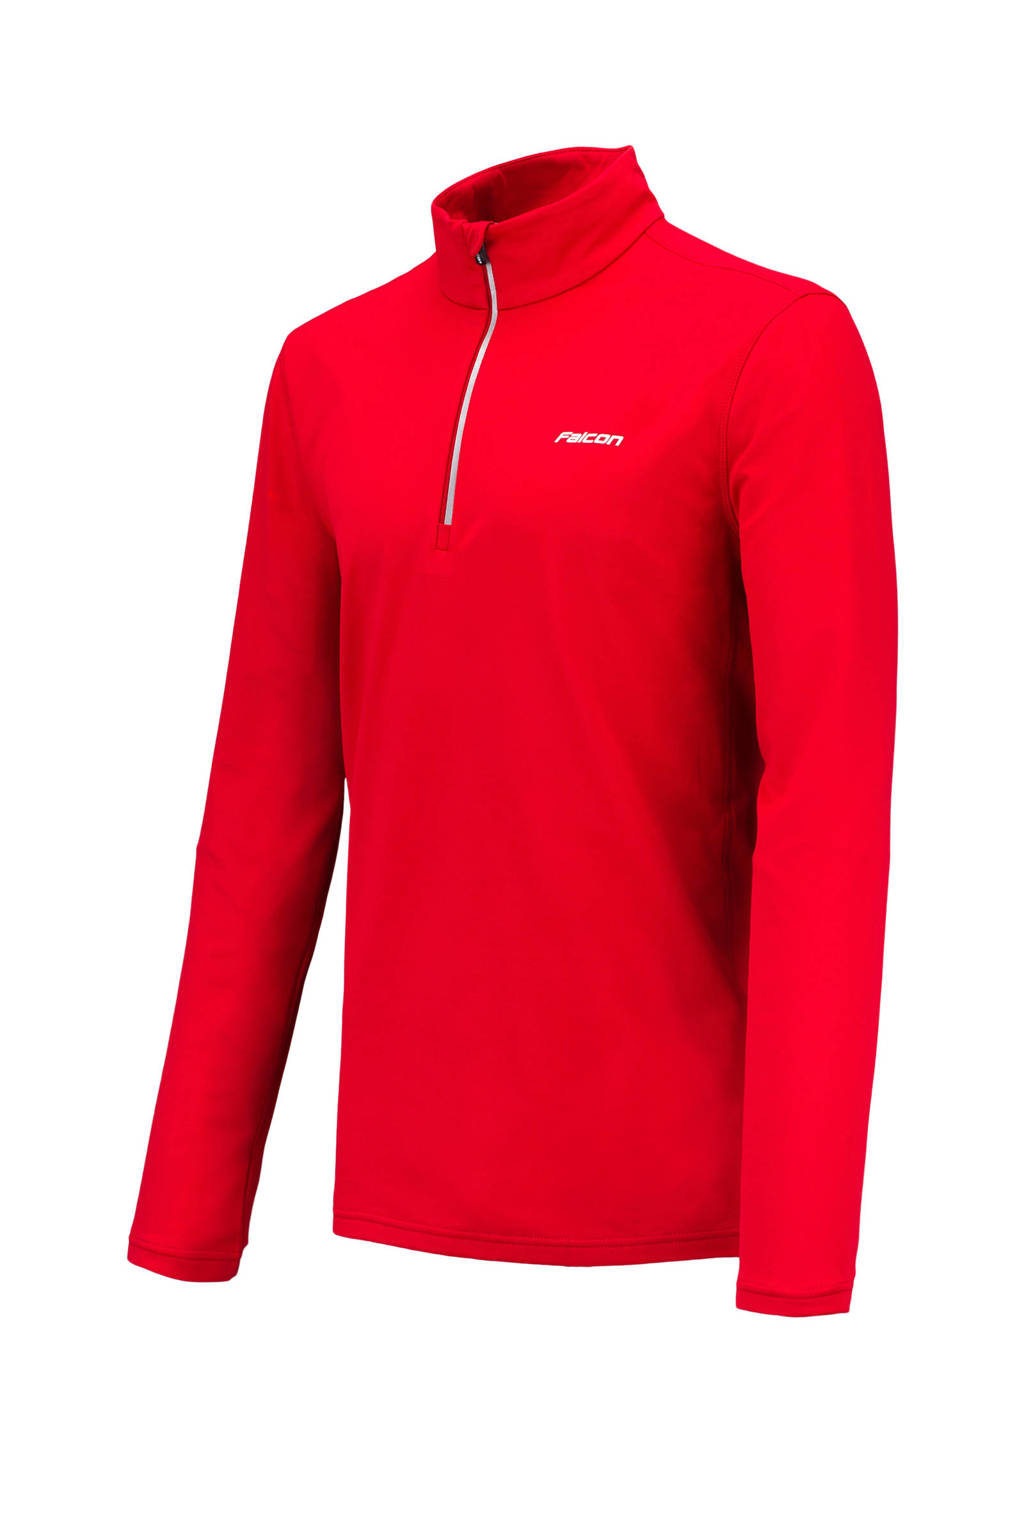 Falcon skipully Haller rood, Rood